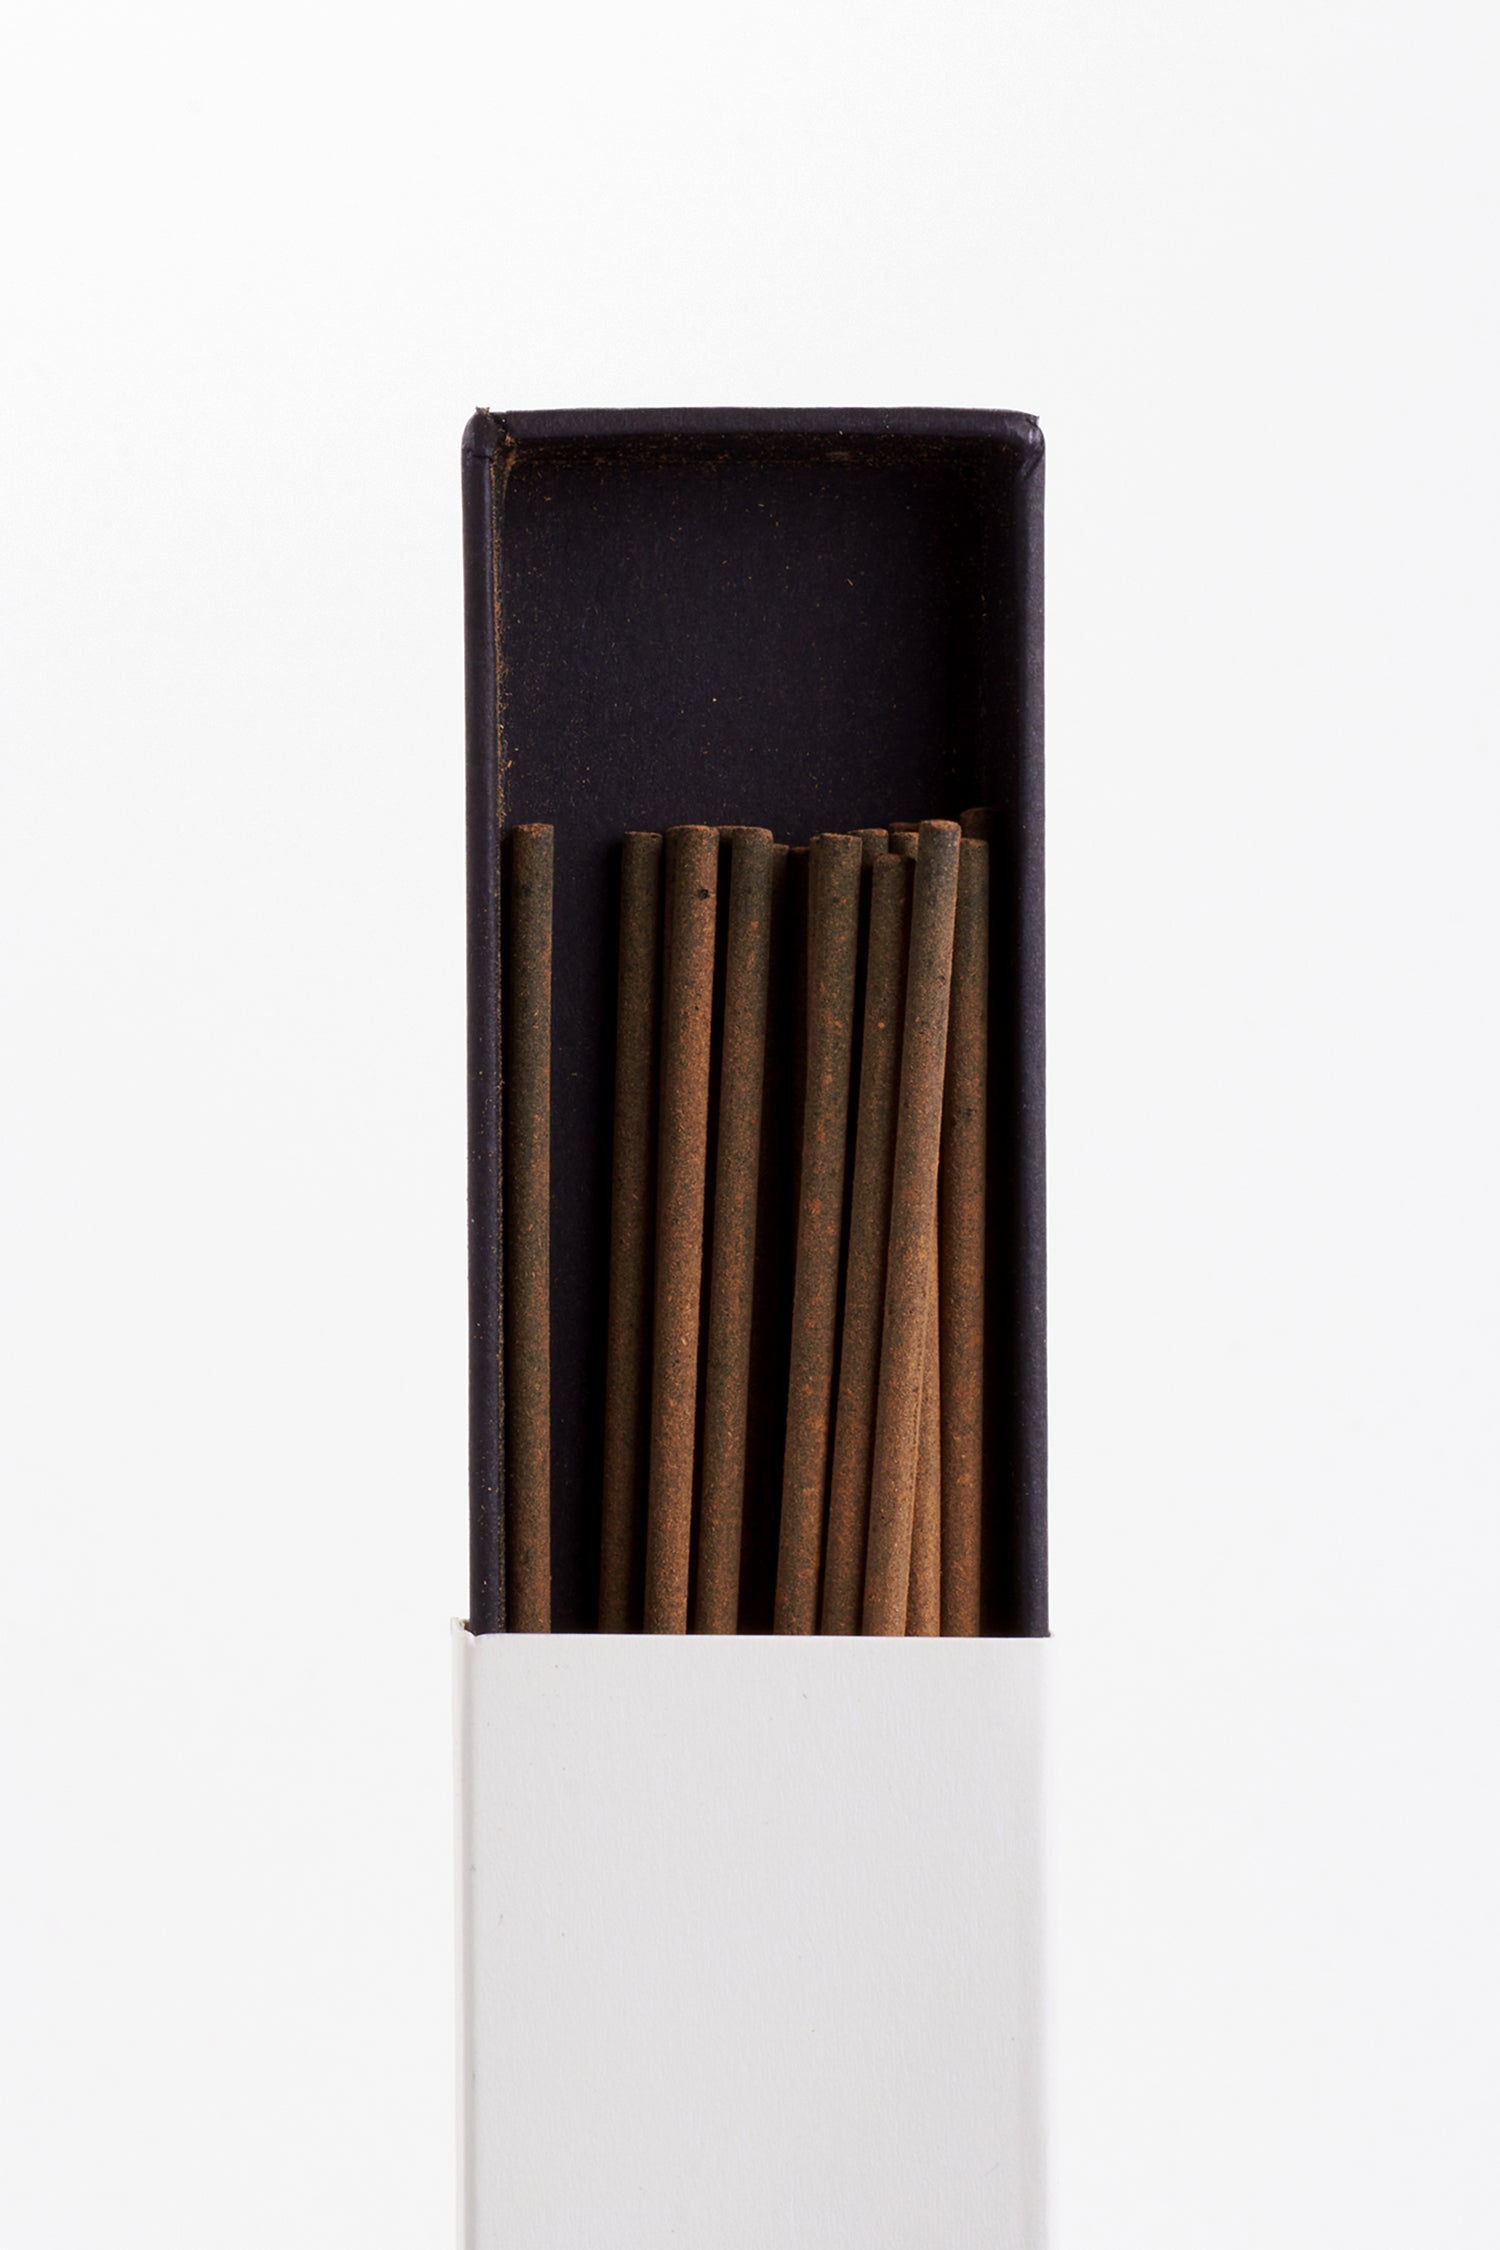 CLARY SAGE INCENSE